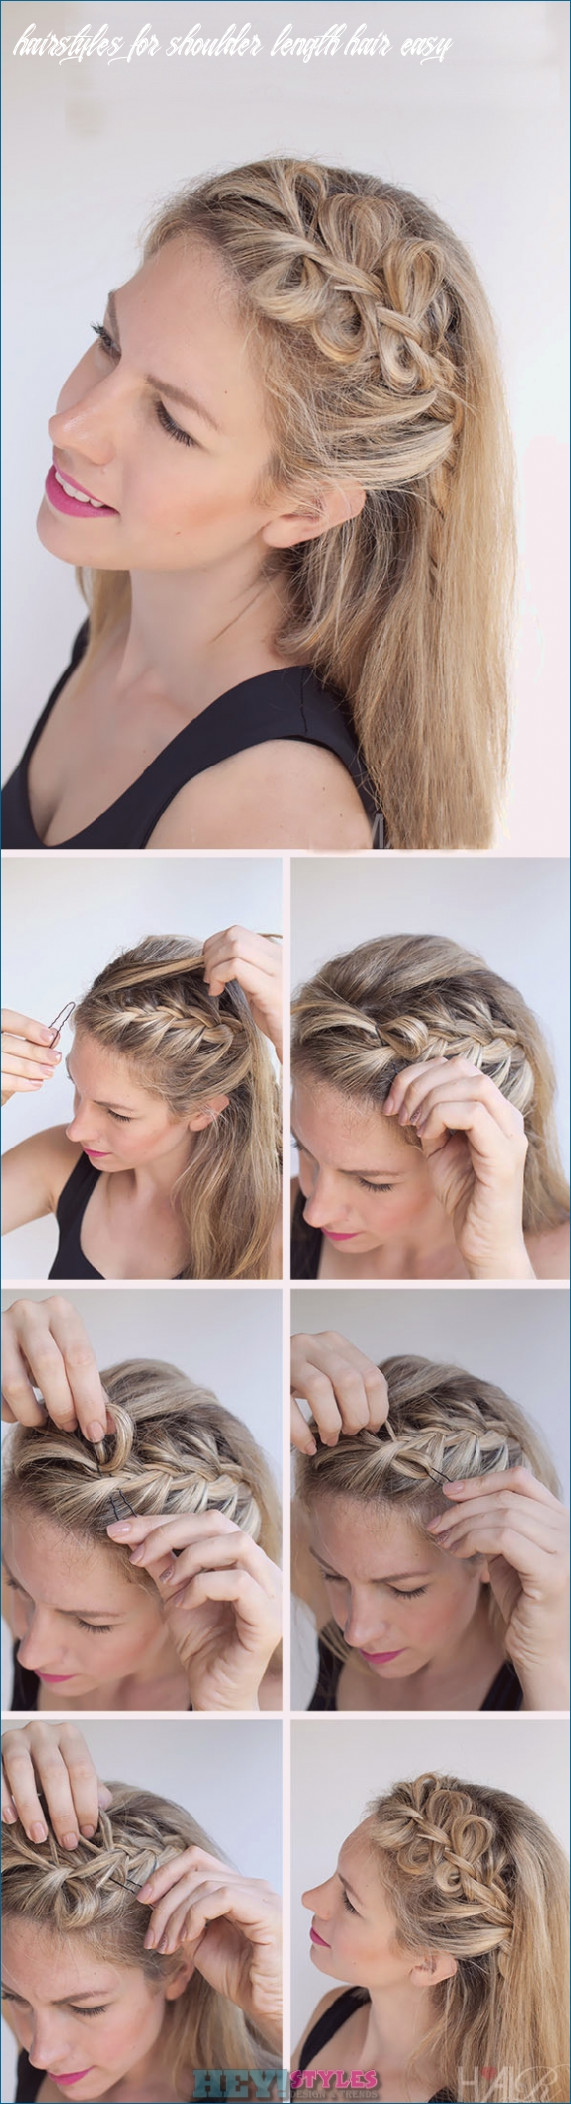 Braided shoulder length hair: 11 easy to use instructions for